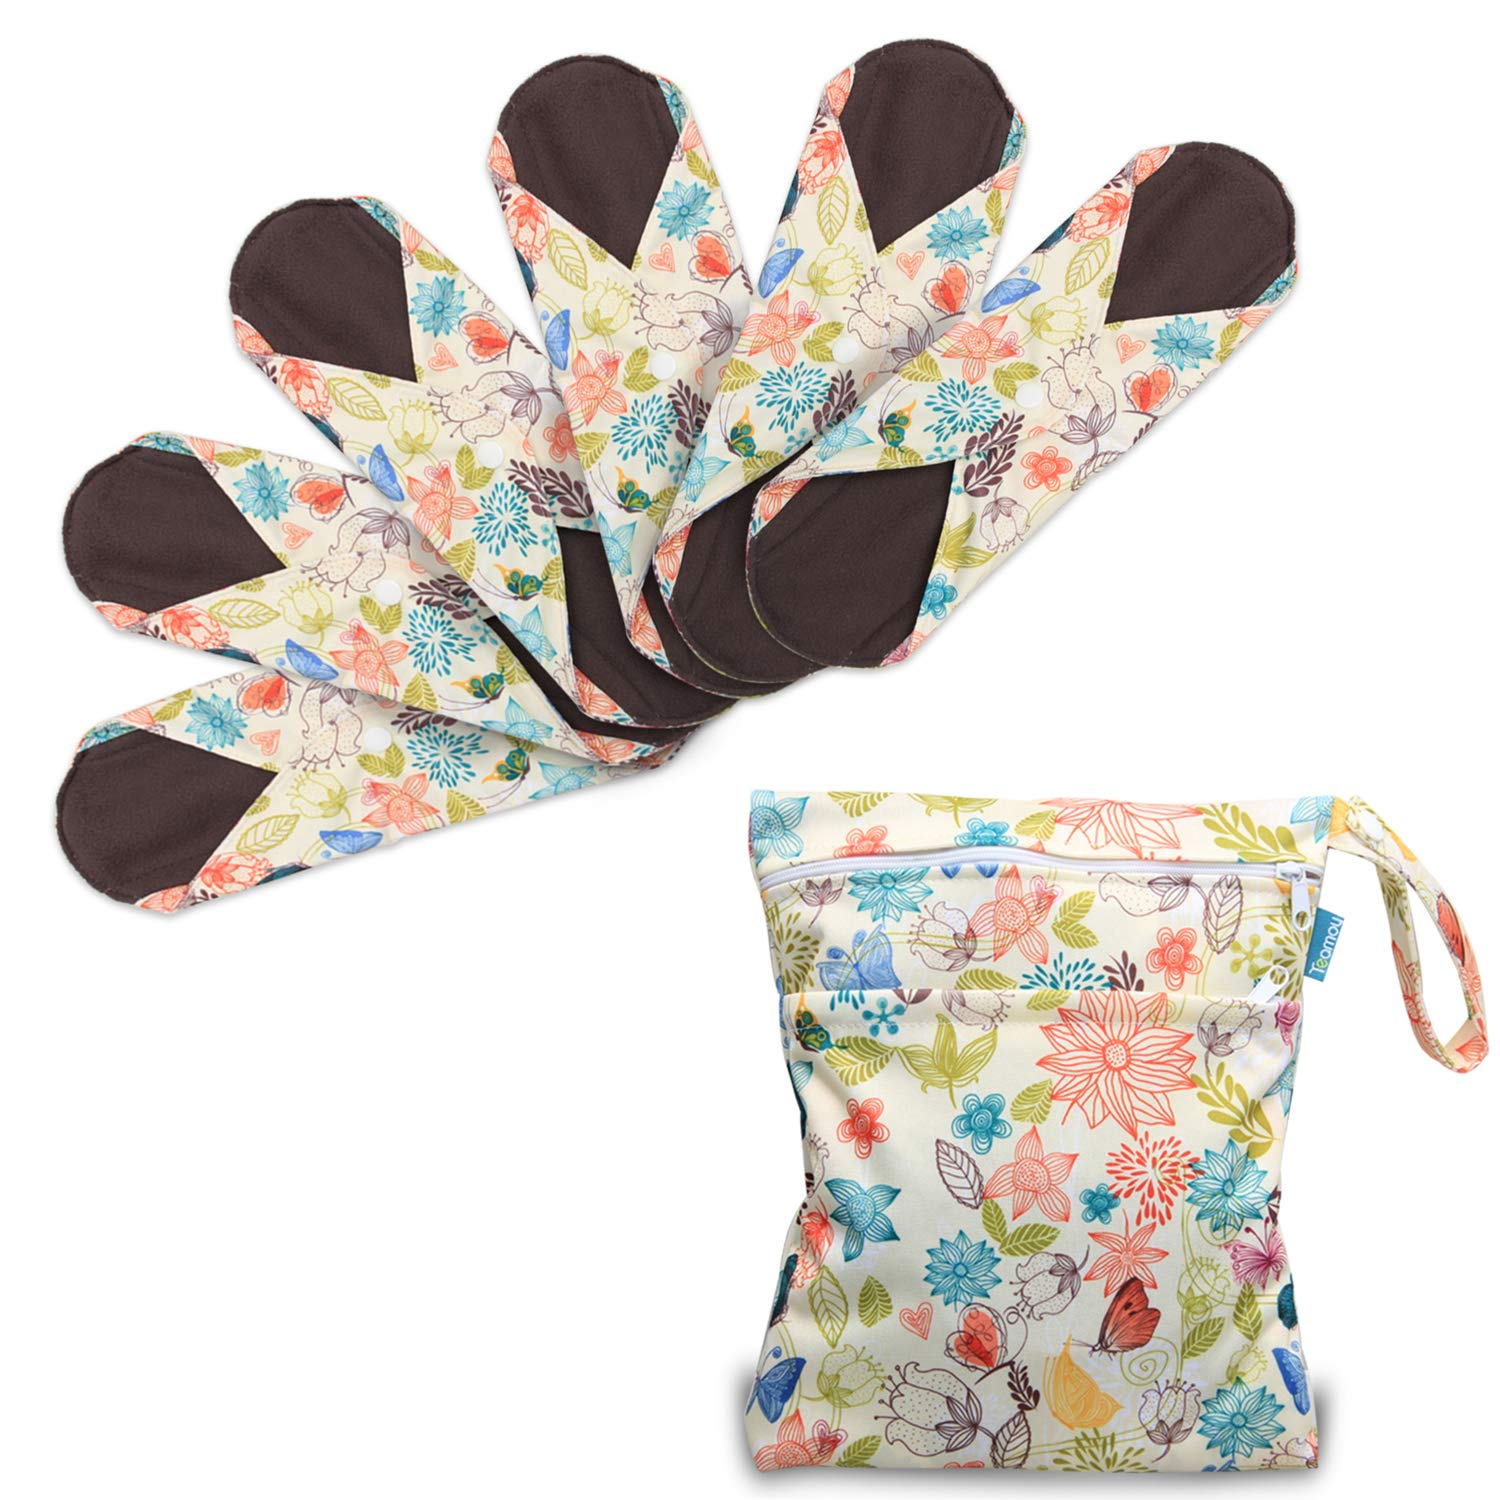 Teamoy 6pcs 10 Inches Sanitary Pad Reusable Washable Cloth Menstrual Pads Panty Liners With Wet Bag Super Absorbent Soft And Comfortable Perfect For General Flow Medium Jungle